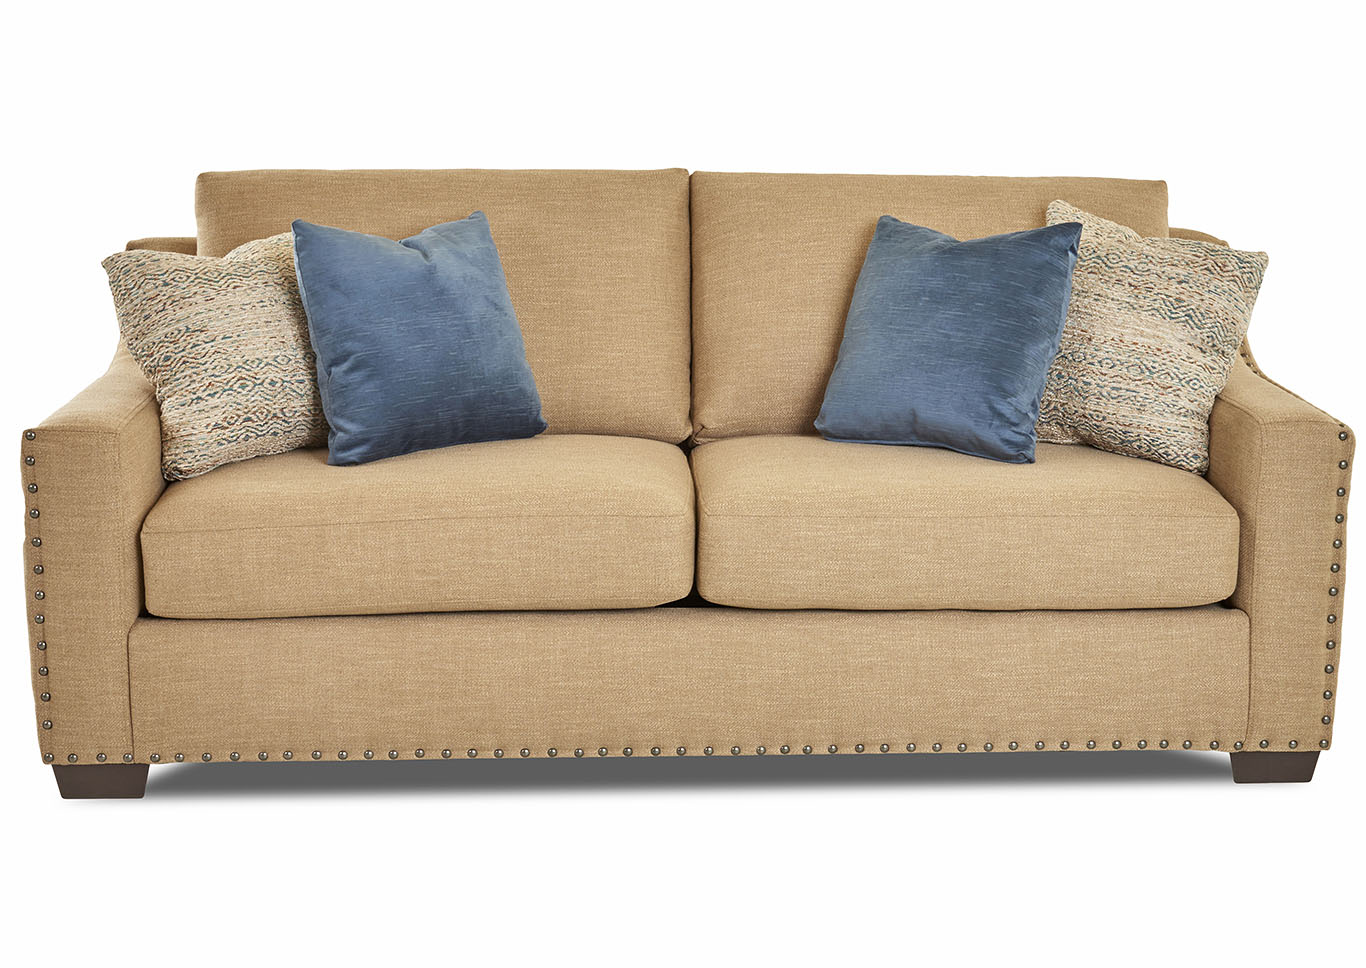 Argos Fabric Sleeper Sofa,Klaussner Home Furnishings